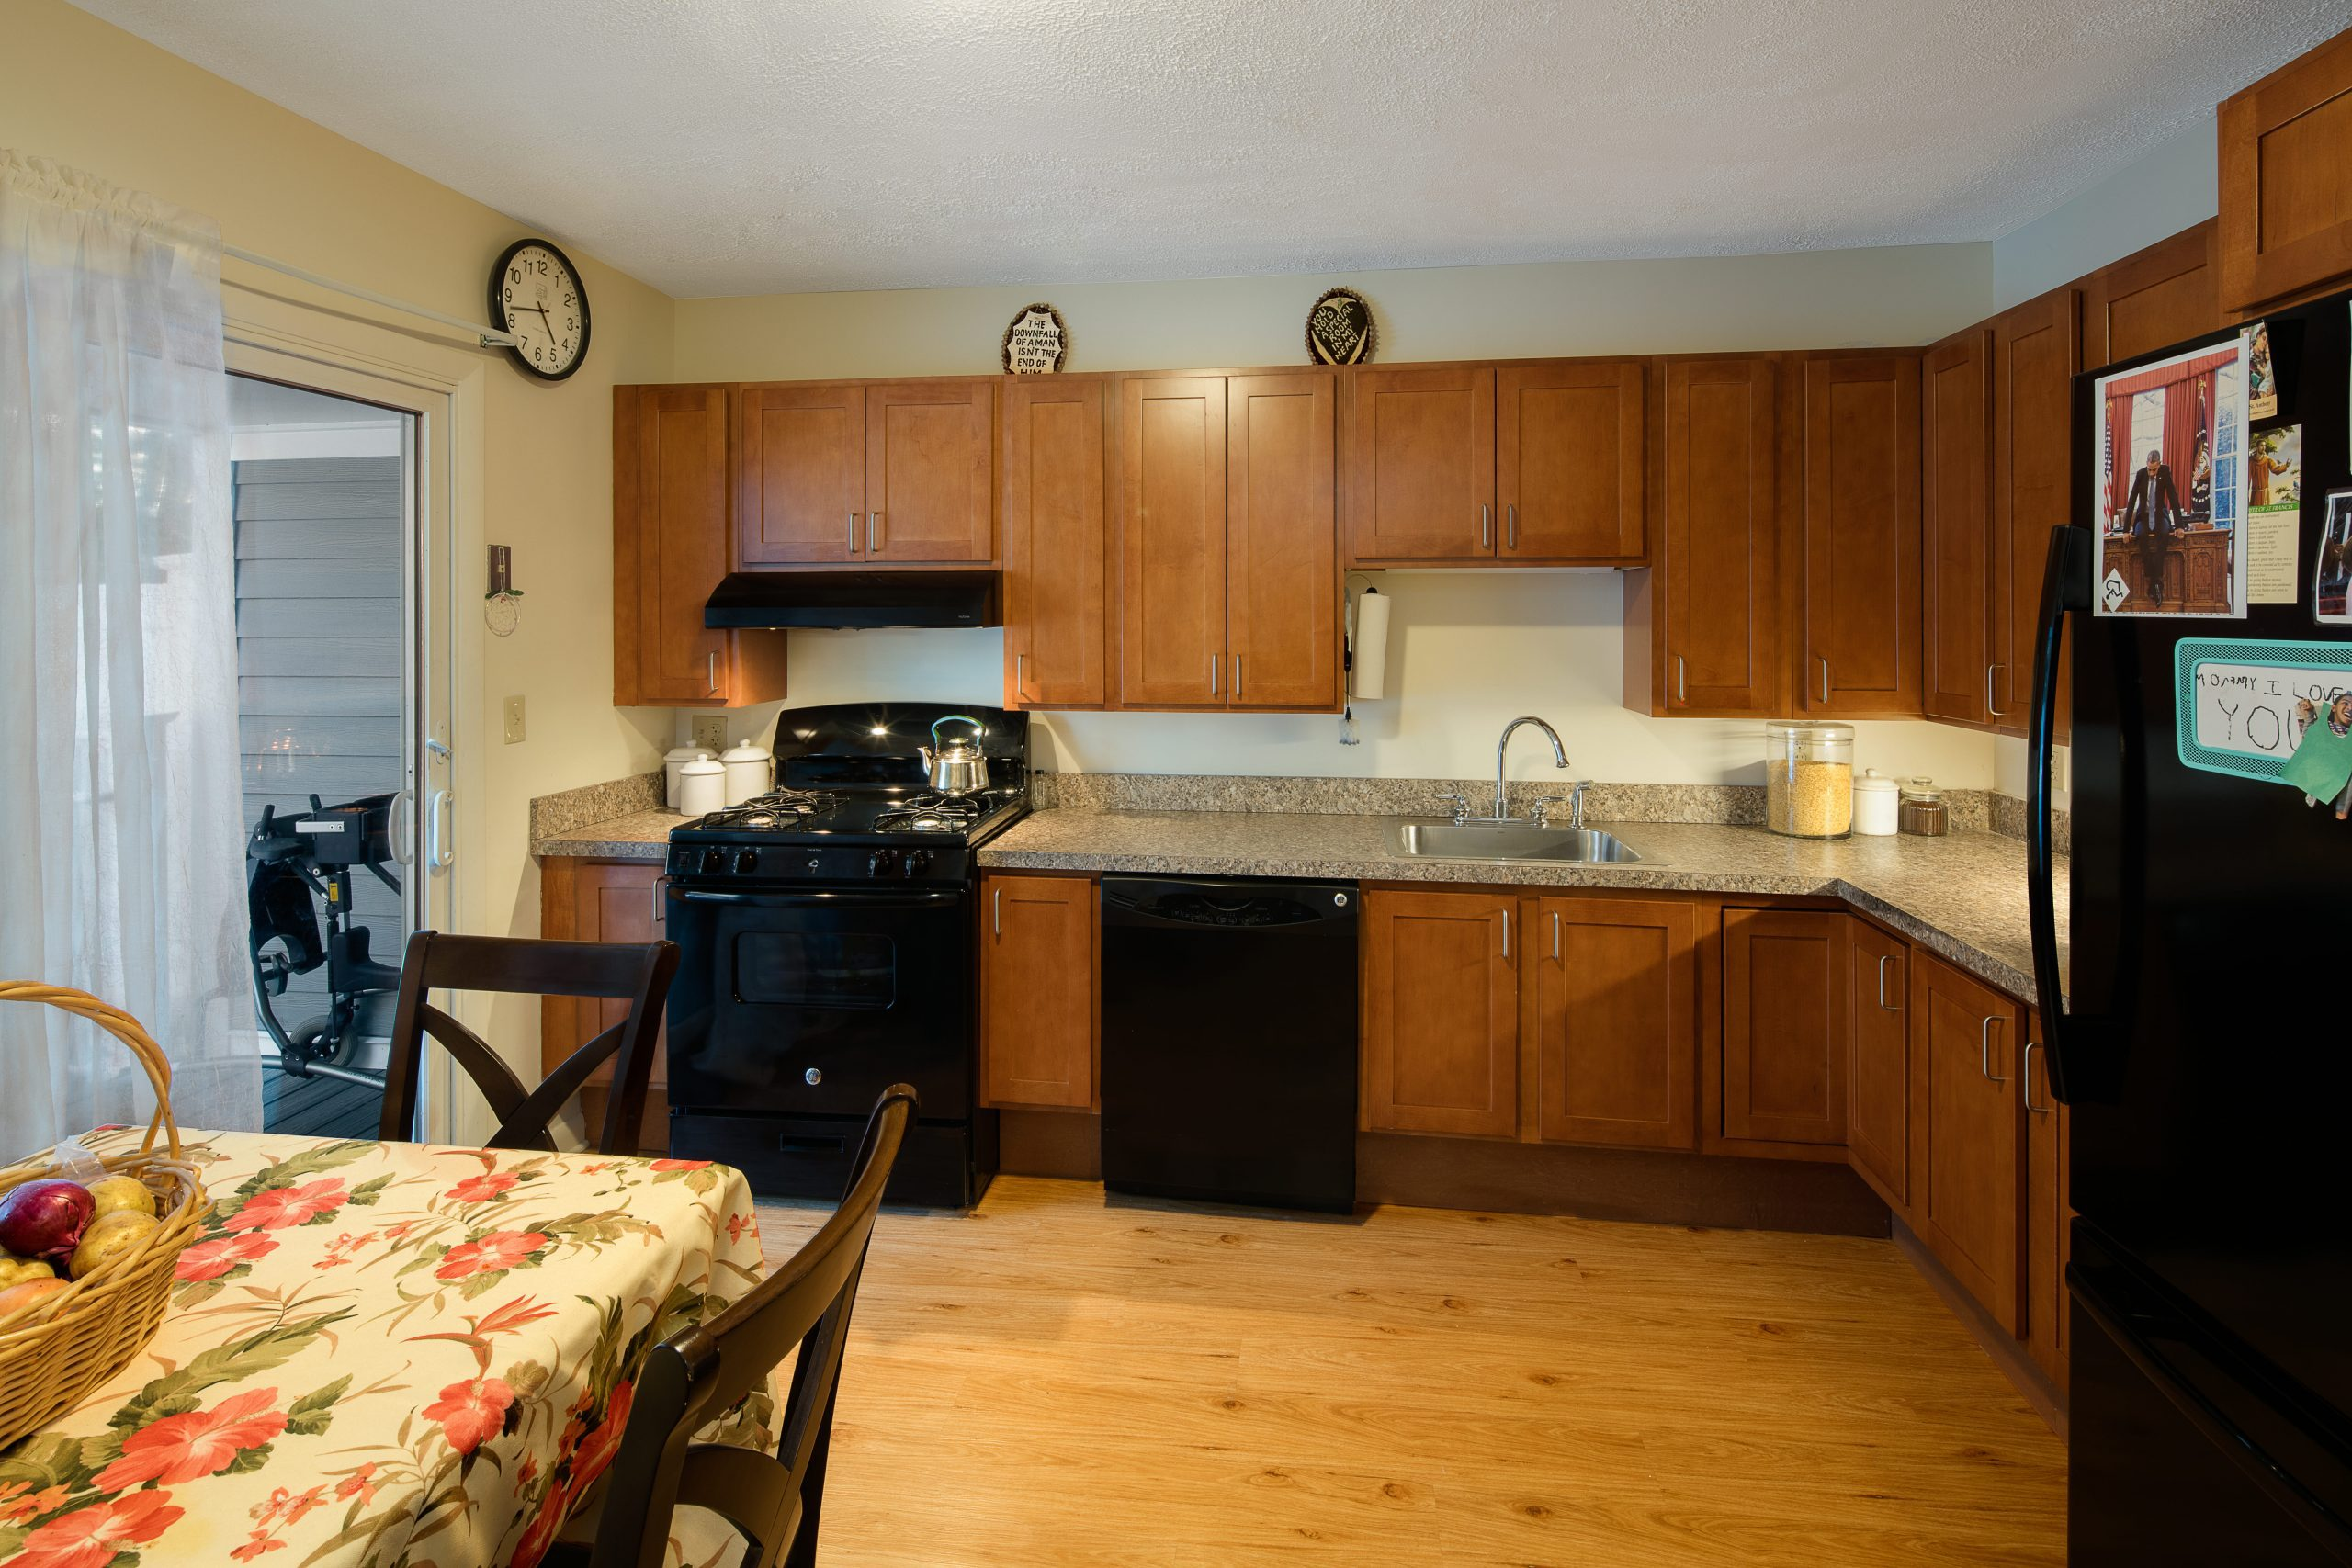 accessible kitchen with removable cabinets